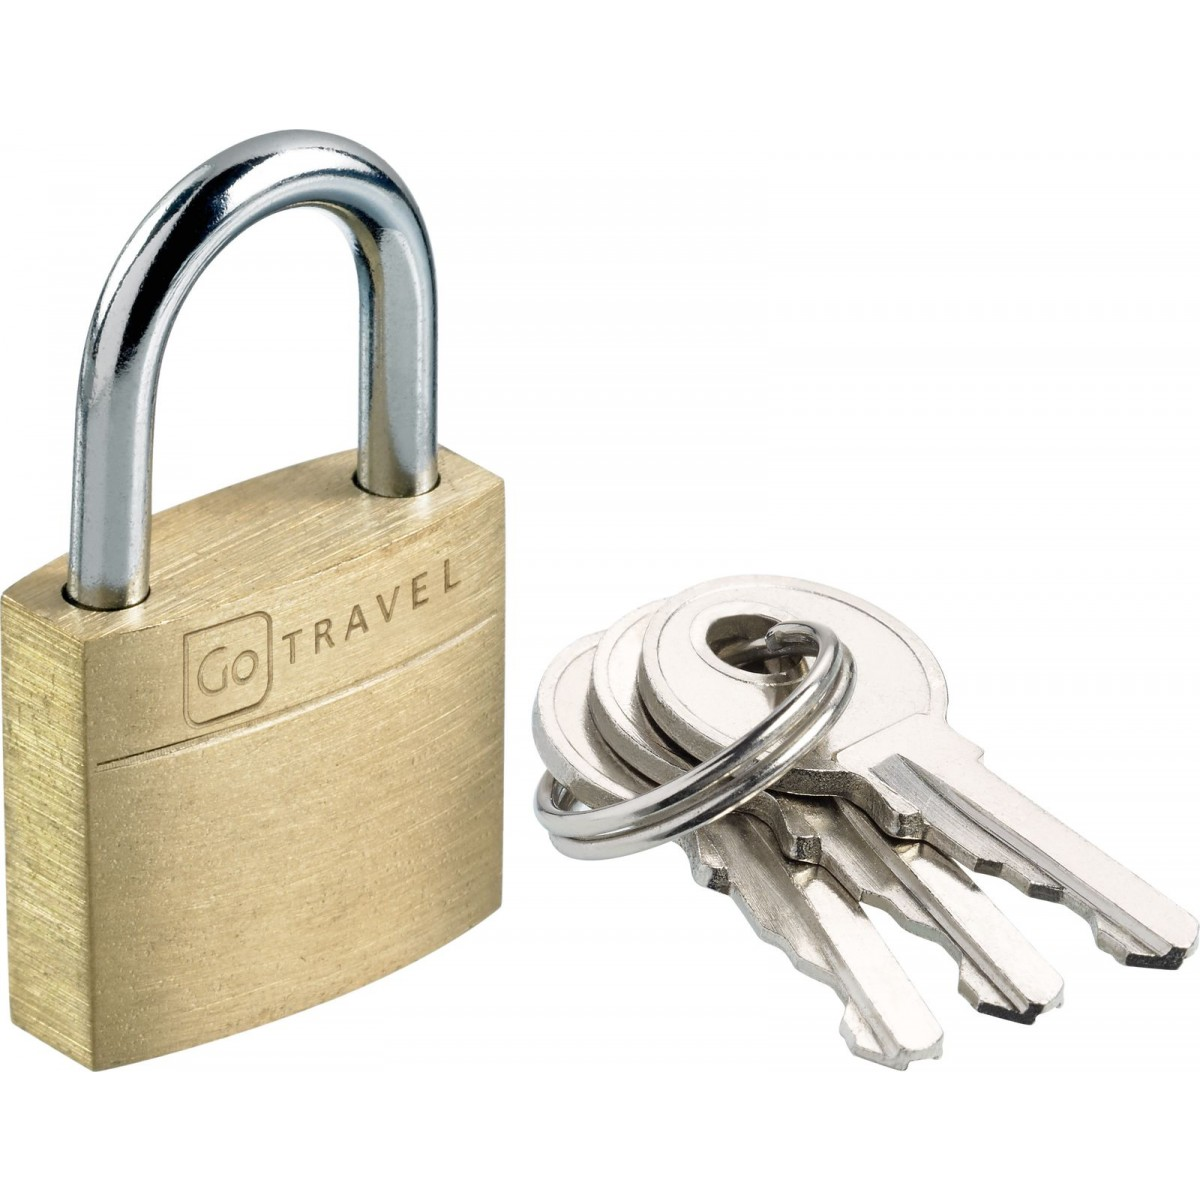 GO TRAVEL CASE LOCK SINGLE